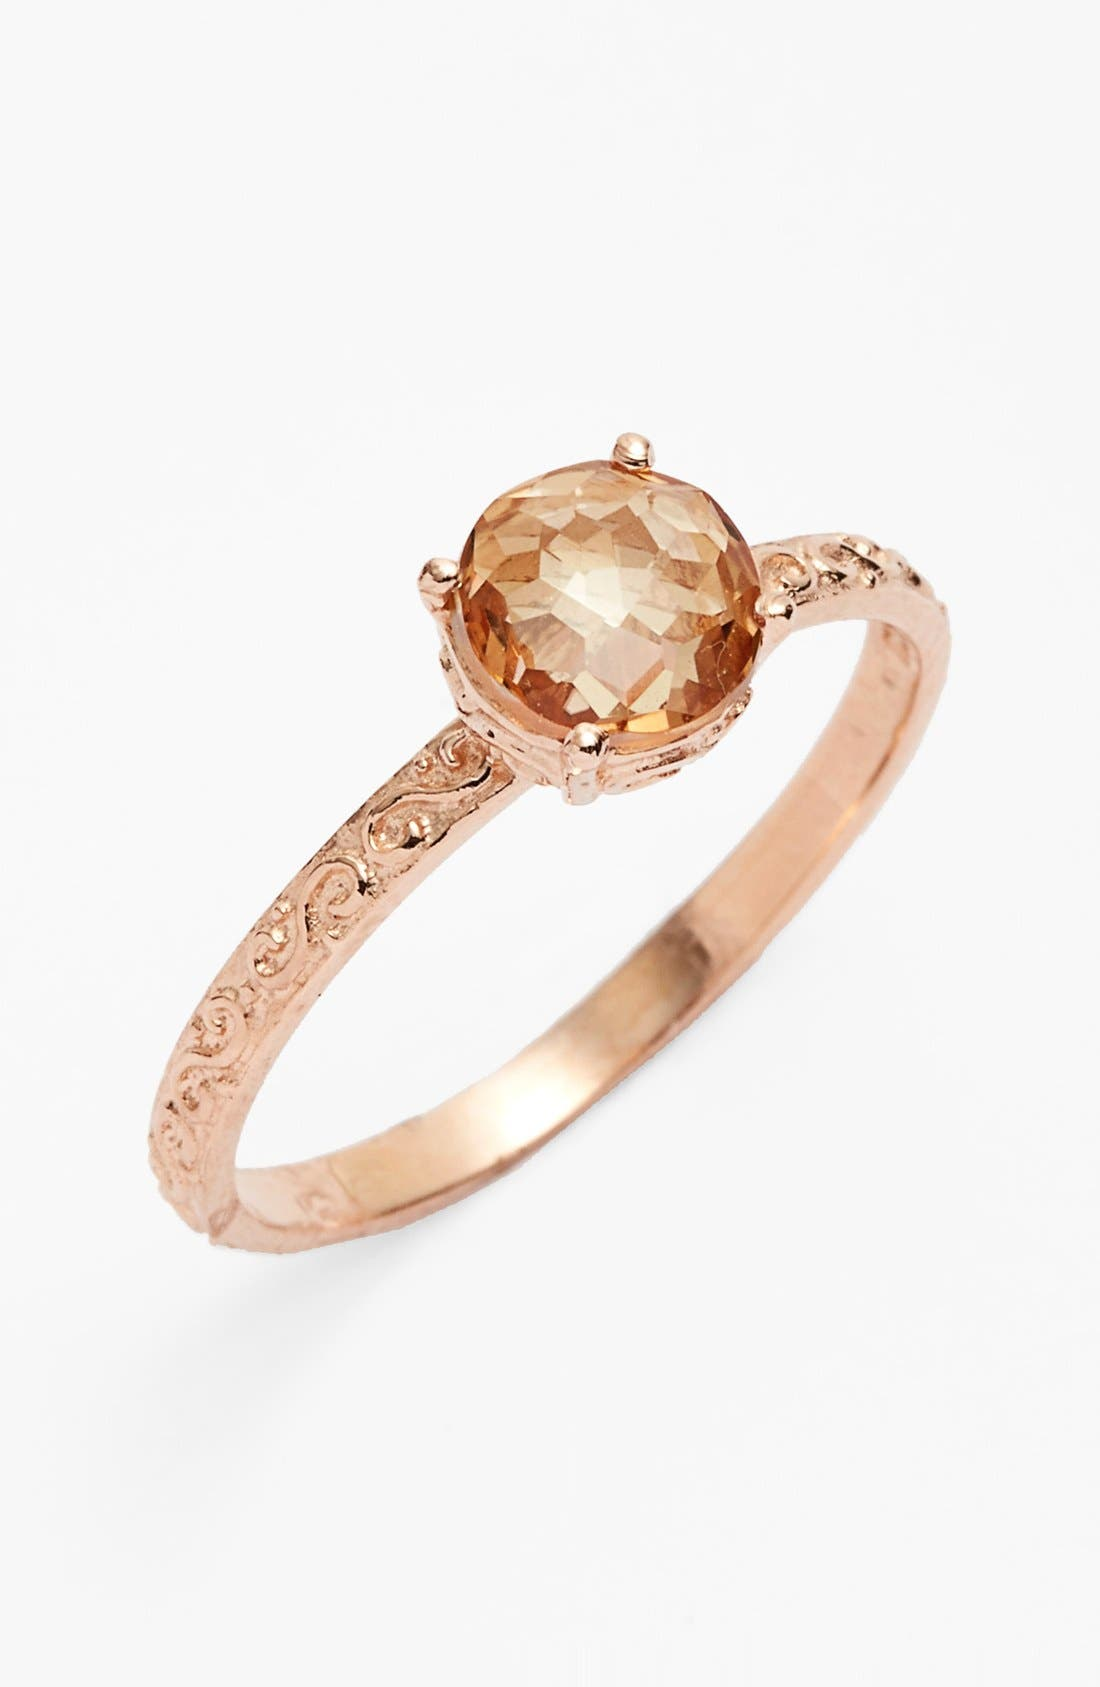 Alternate Image 1 Selected - KALAN by Suzanne Kalan Cushion Stone Filigree Ring